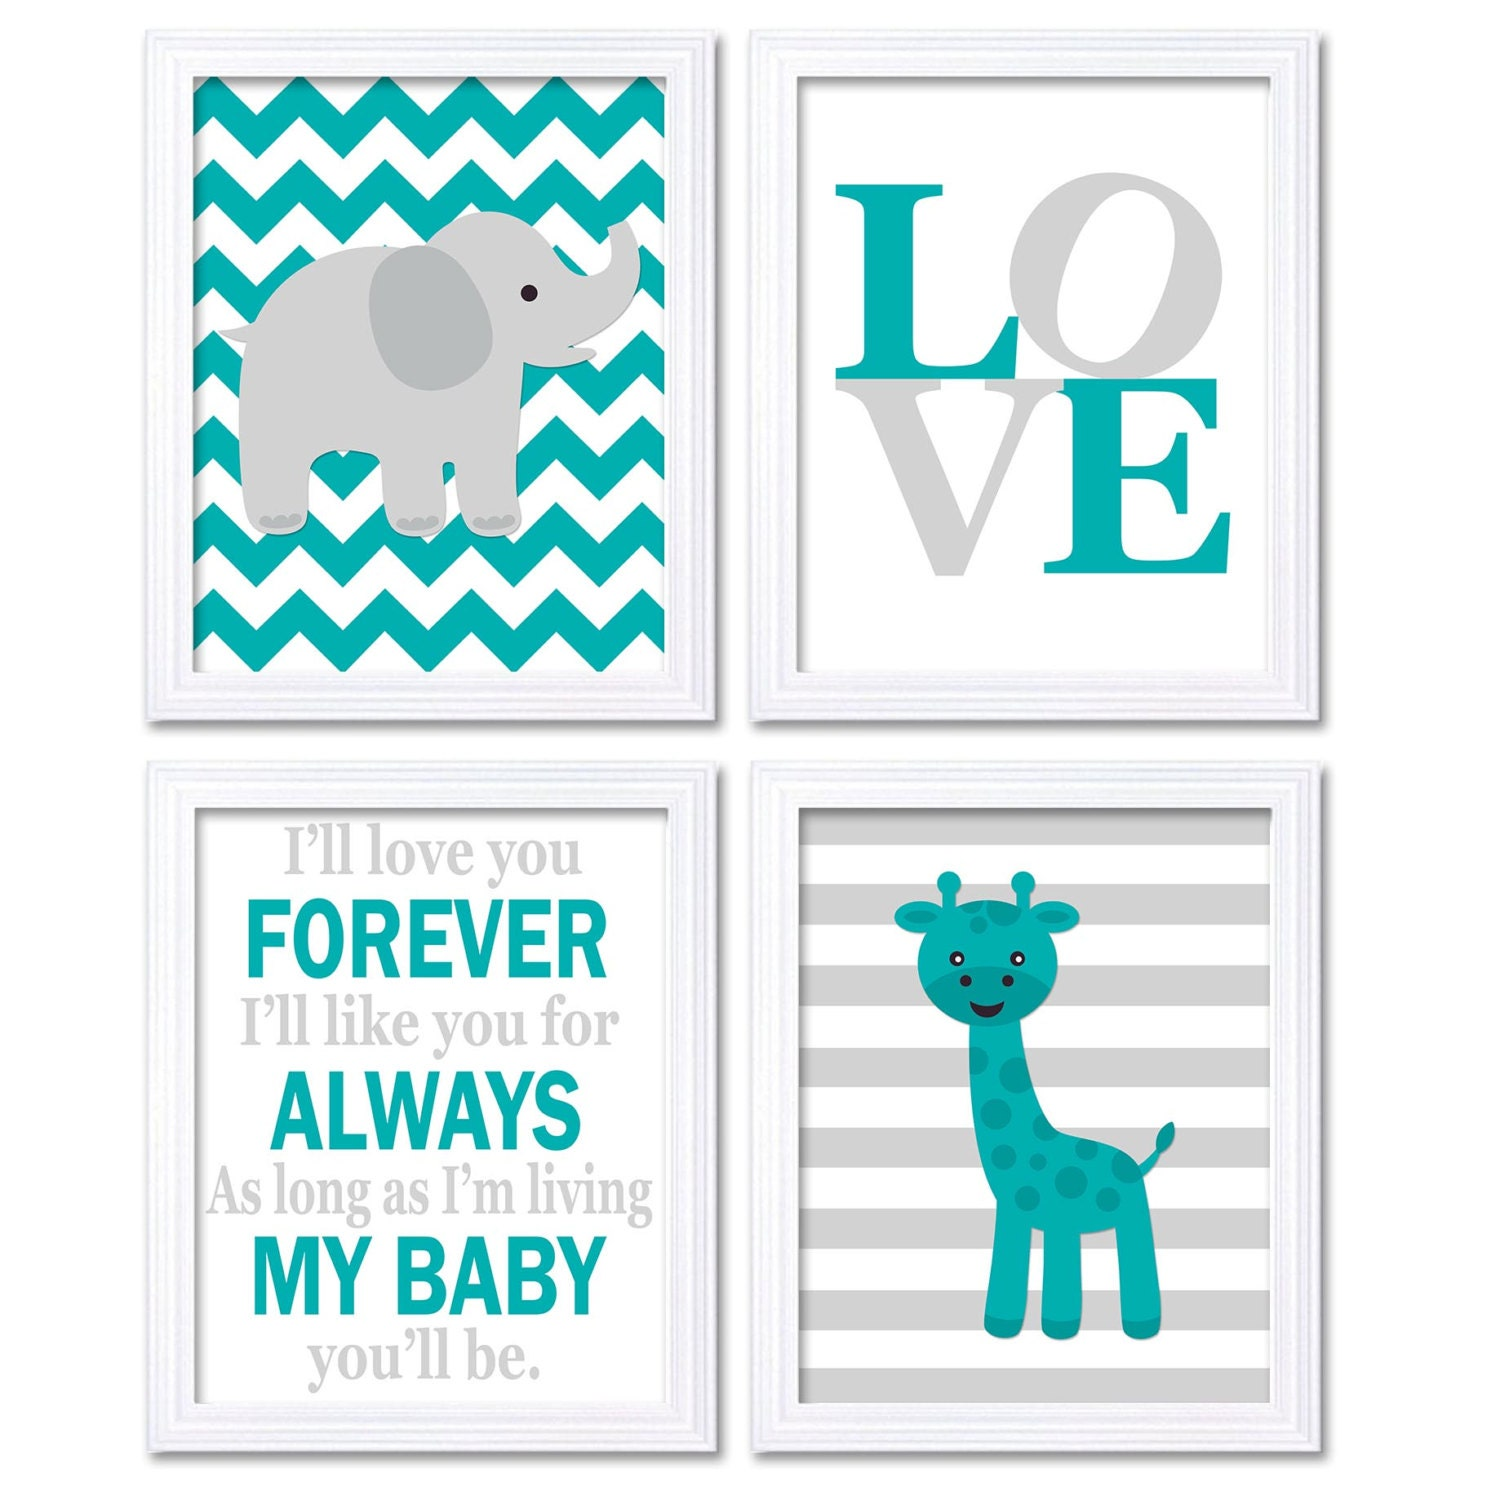 Elephant Nursery Art Giraffe Wall Decor Ill Love You Forever Set of 4 Prints Baby Green Turquoise Gr